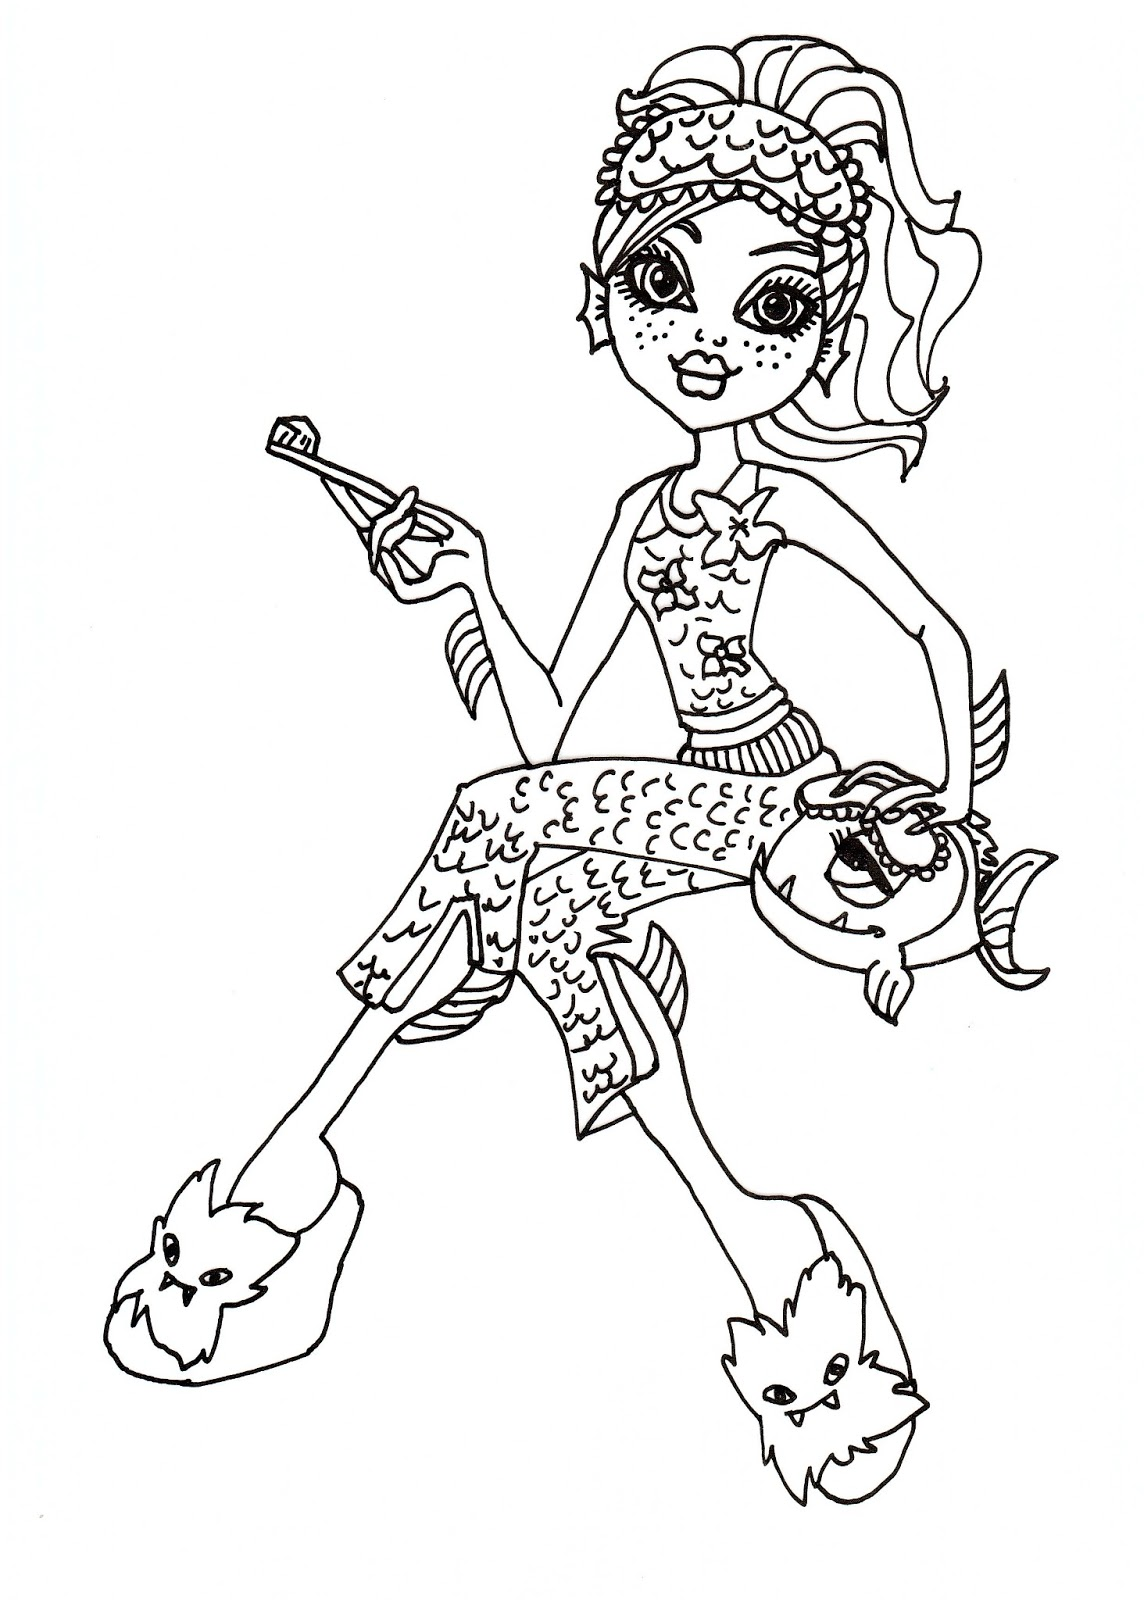 monster high coloring pages lagoona - photo#8